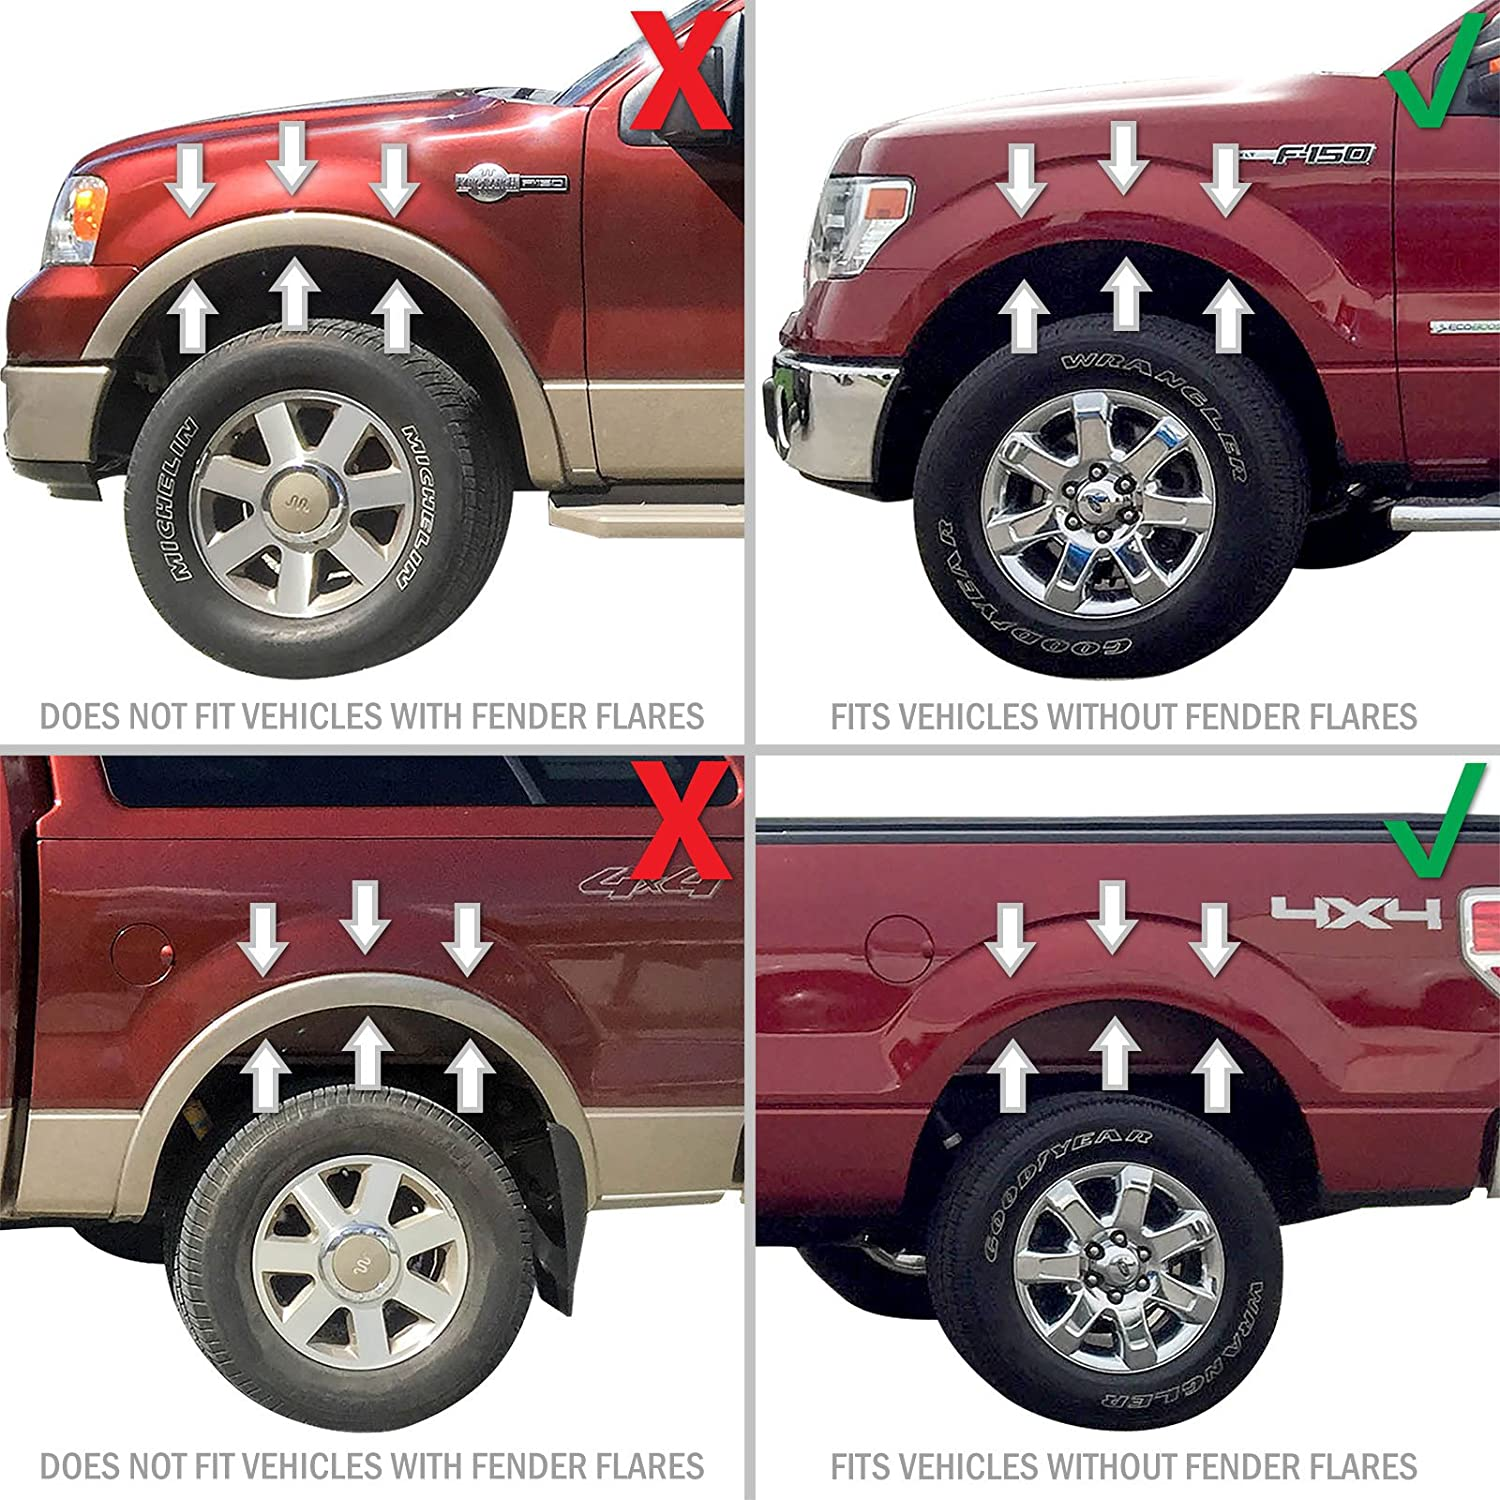 Red Hound Auto Premium Heavy Duty Molded 2004-2014 Compatible with Ford F-150 Mud Flaps Guards Splash Front Rear 4pc Set Without Fender Flares